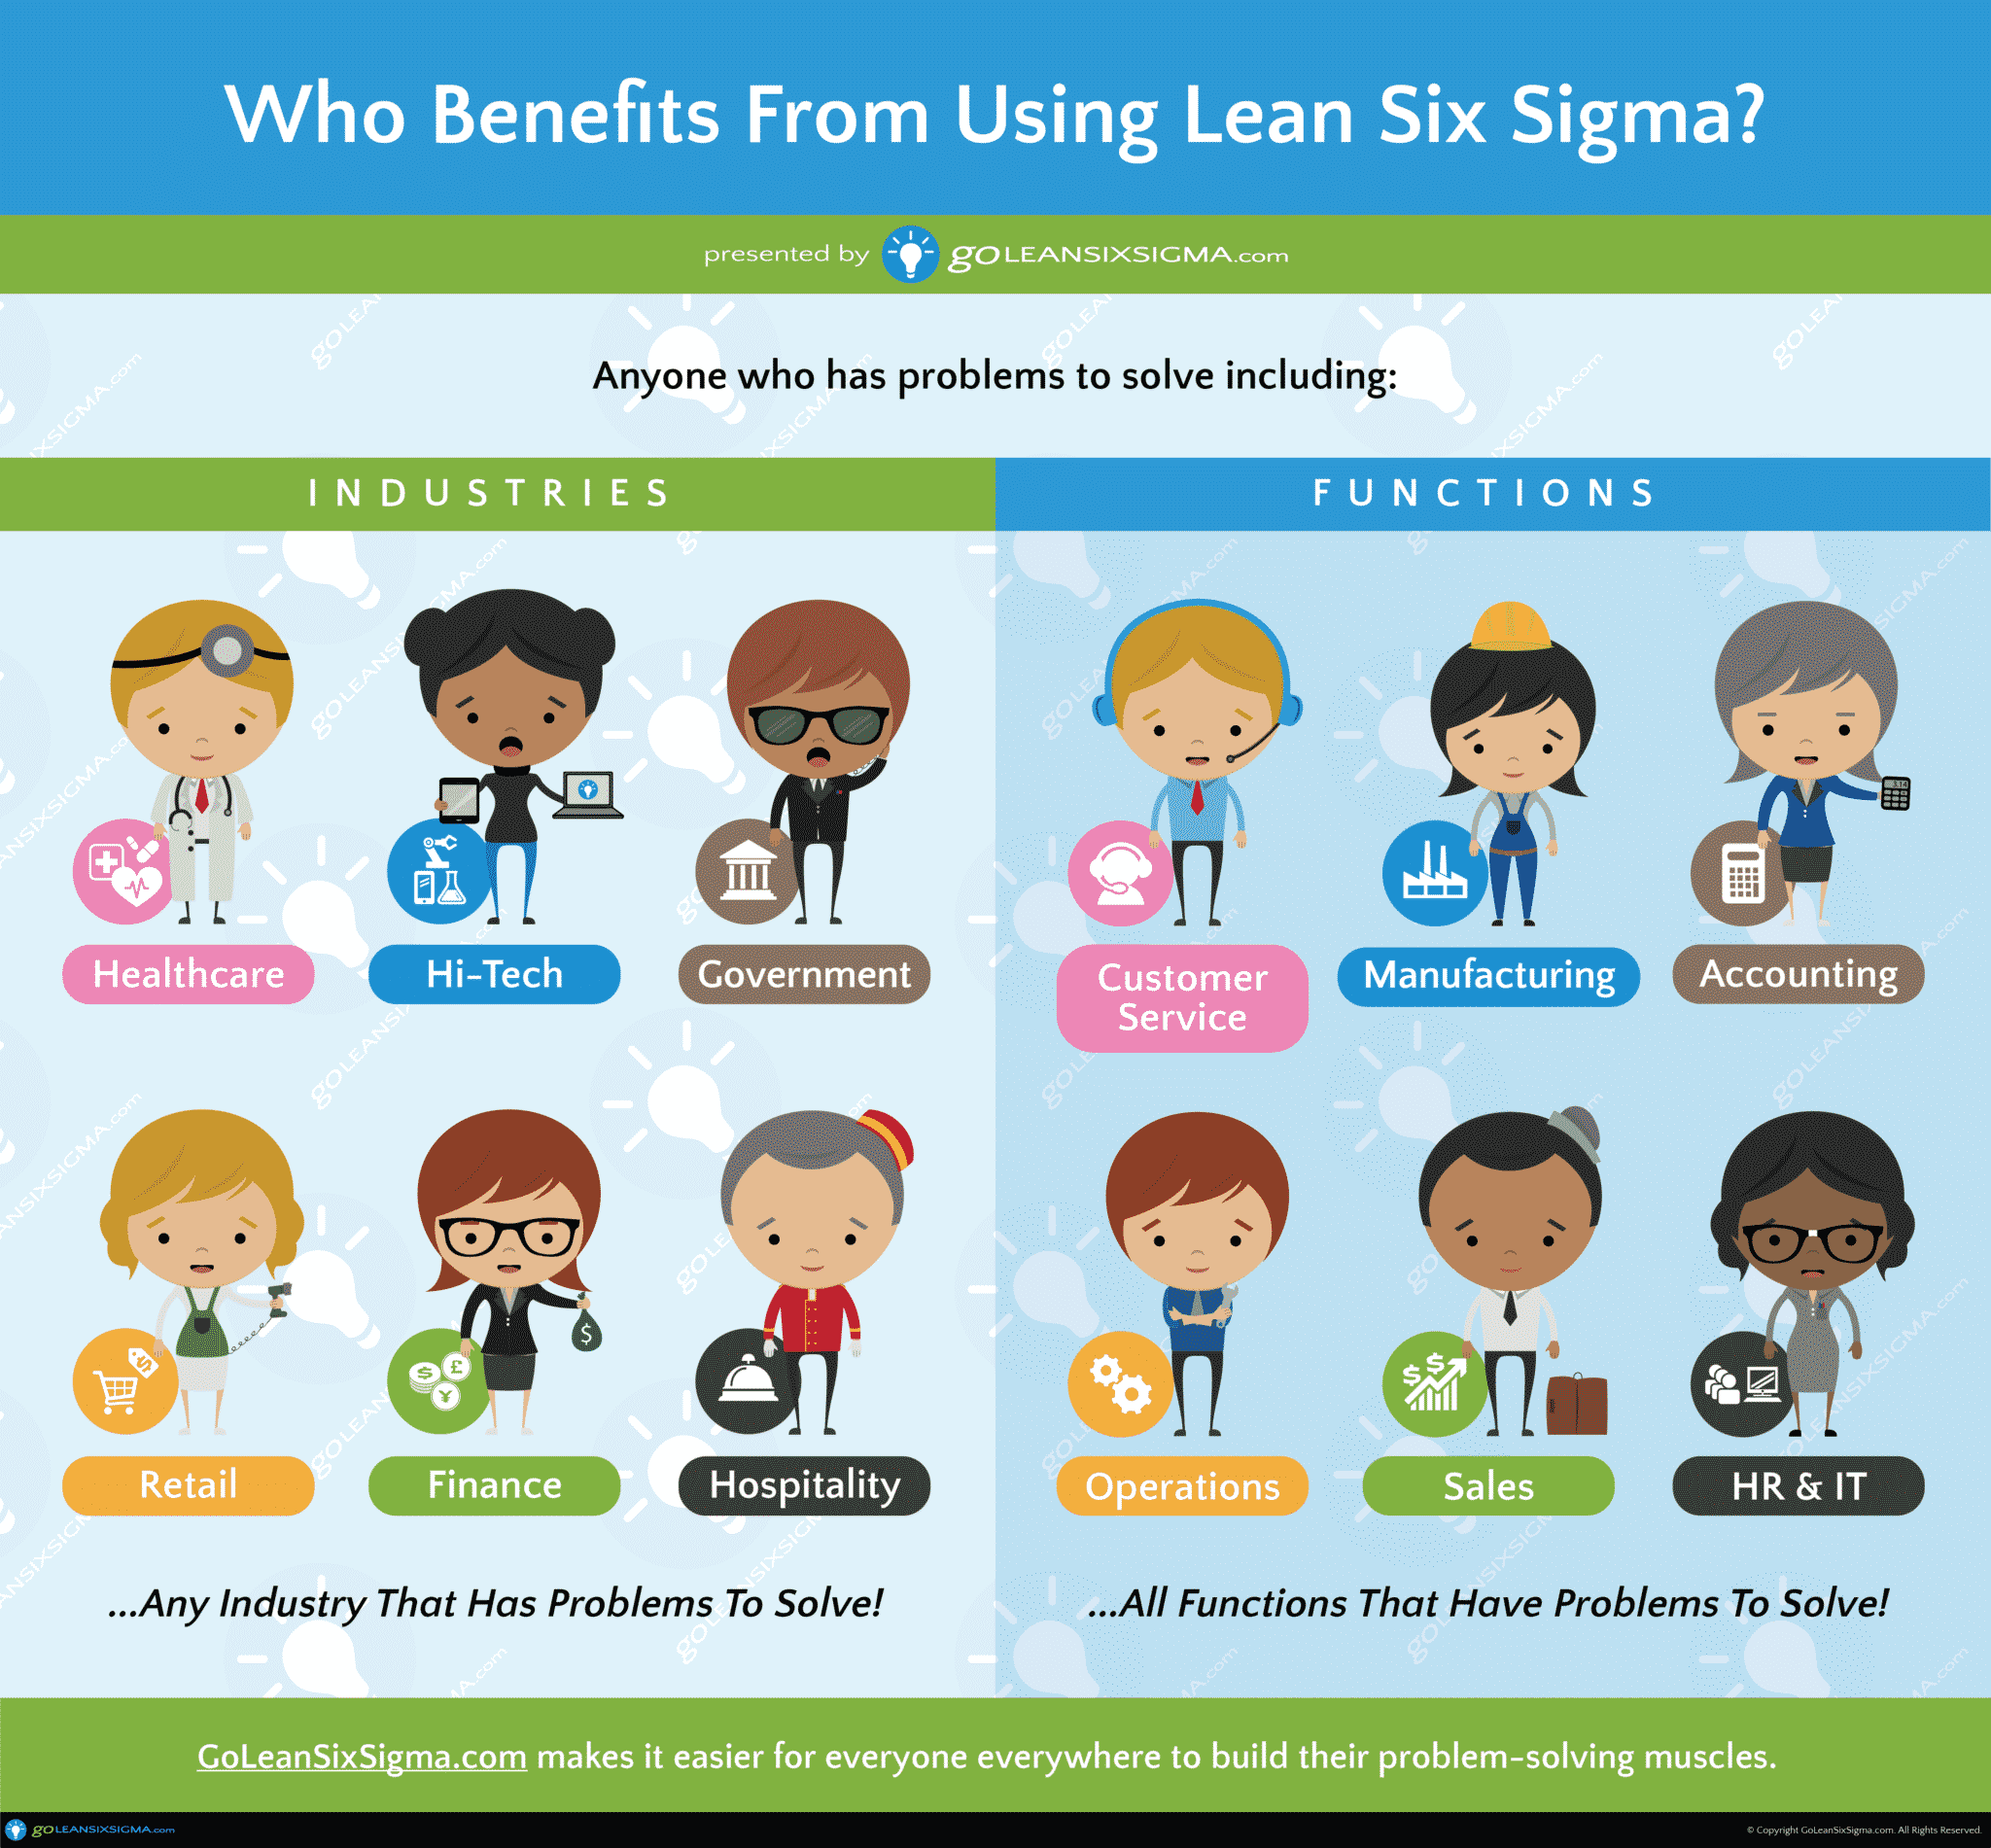 Who Benefits from Lean Six Sigma?